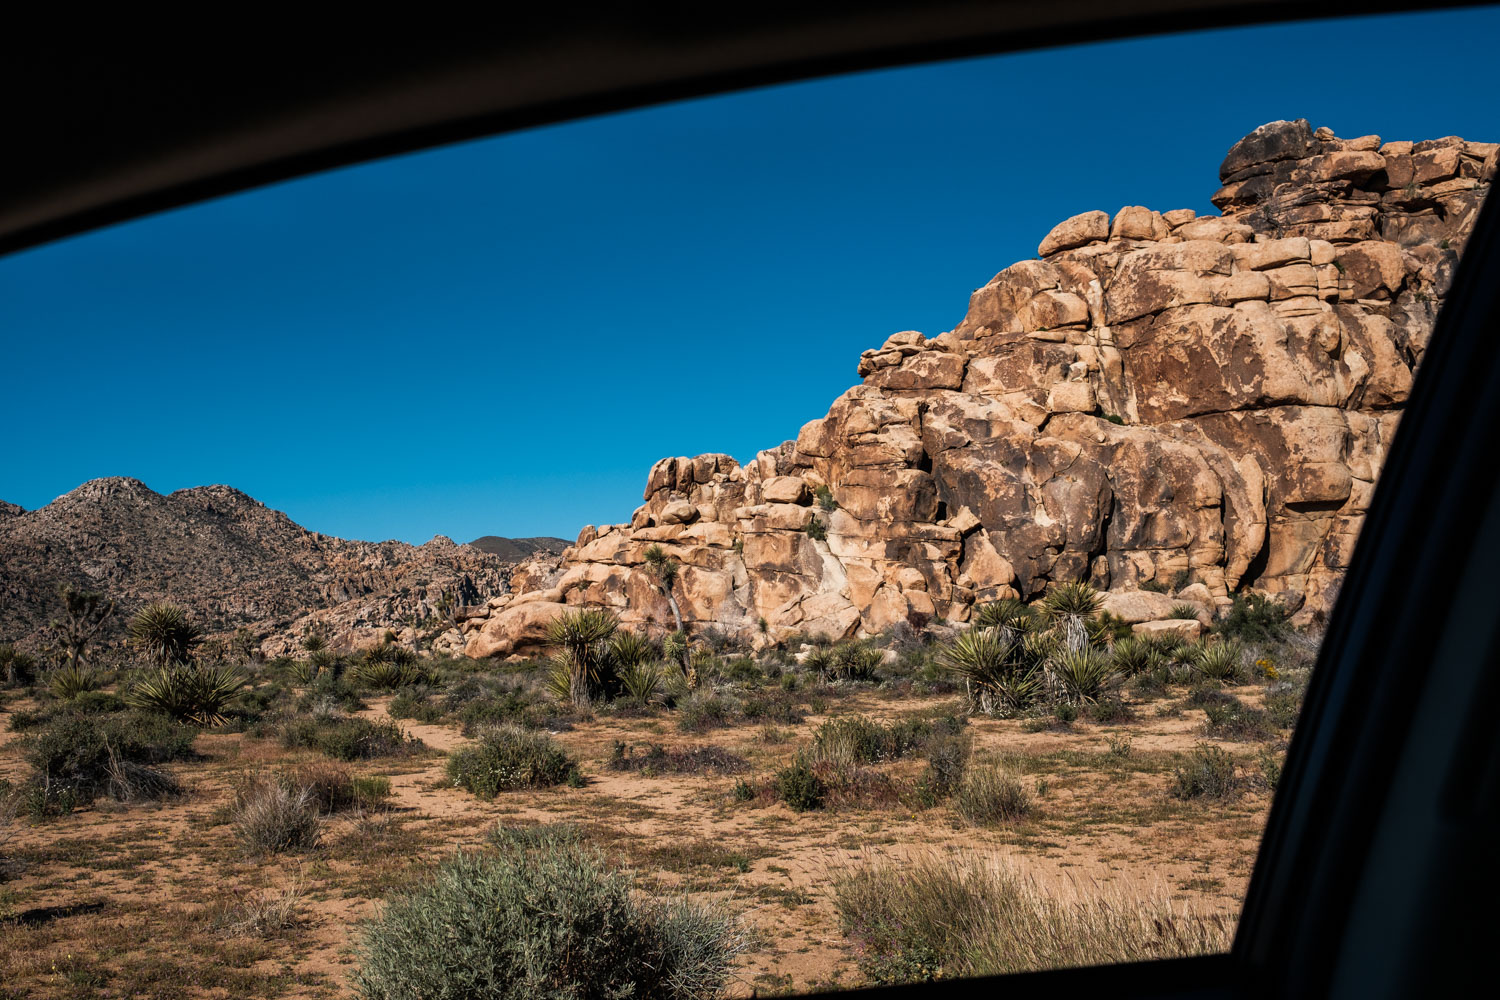 Gorgeous rock formations framed by our car's window